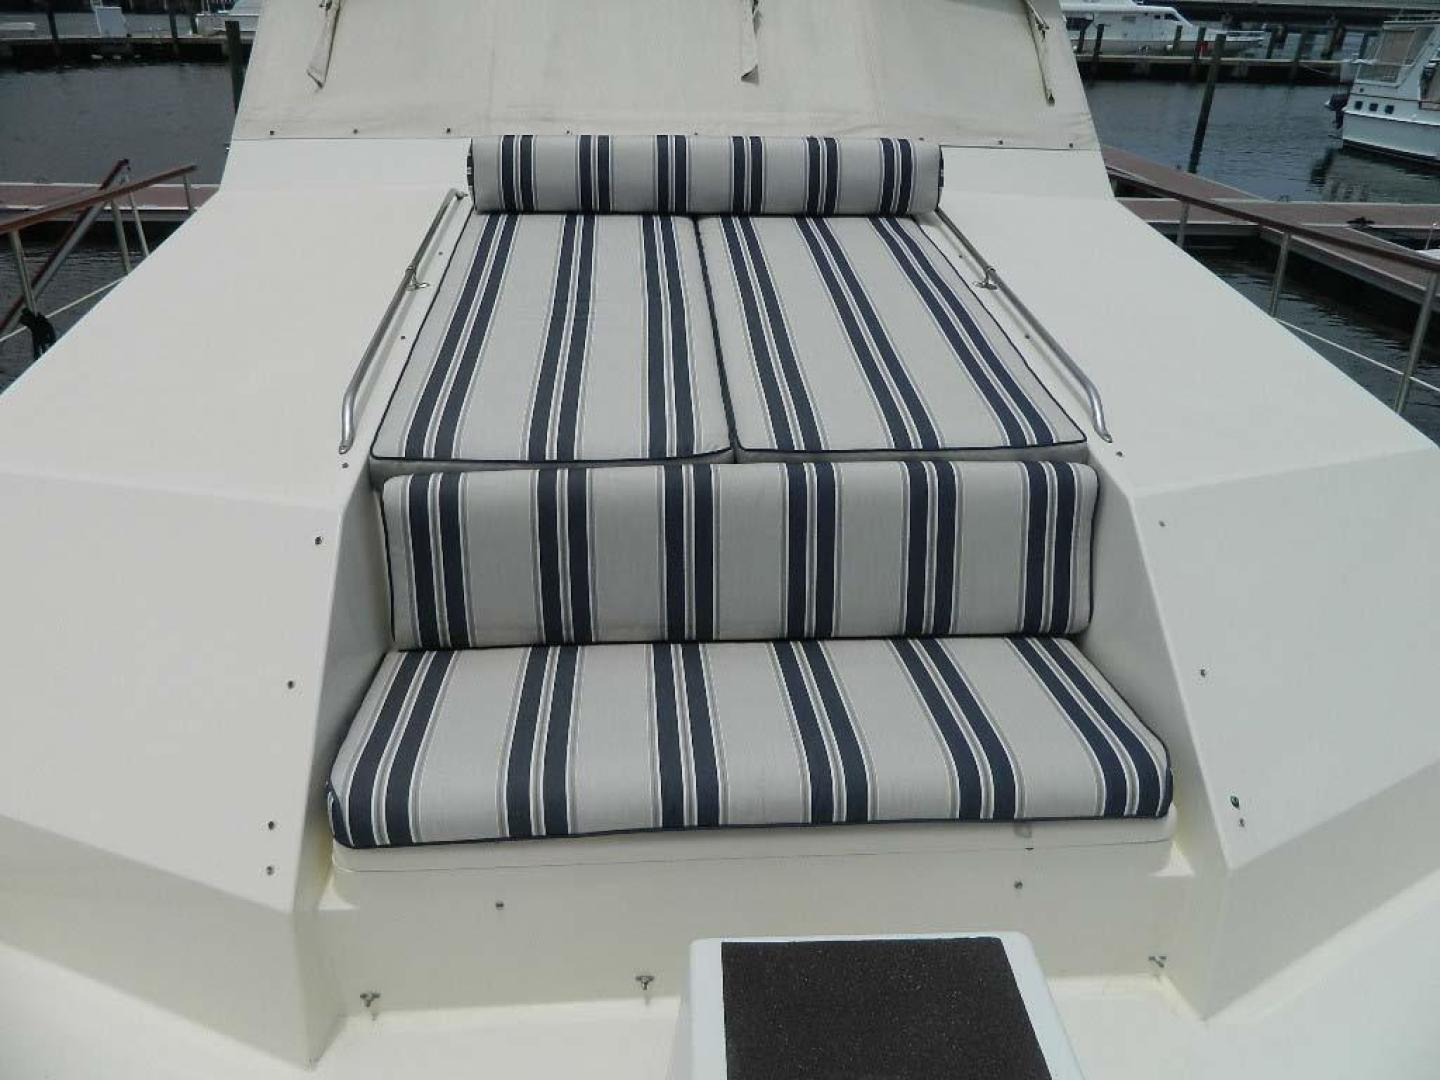 Hatteras-Motor Yacht 1989-Windfall Stuart-Florida-United States-Foredeck Seating-910366 | Thumbnail